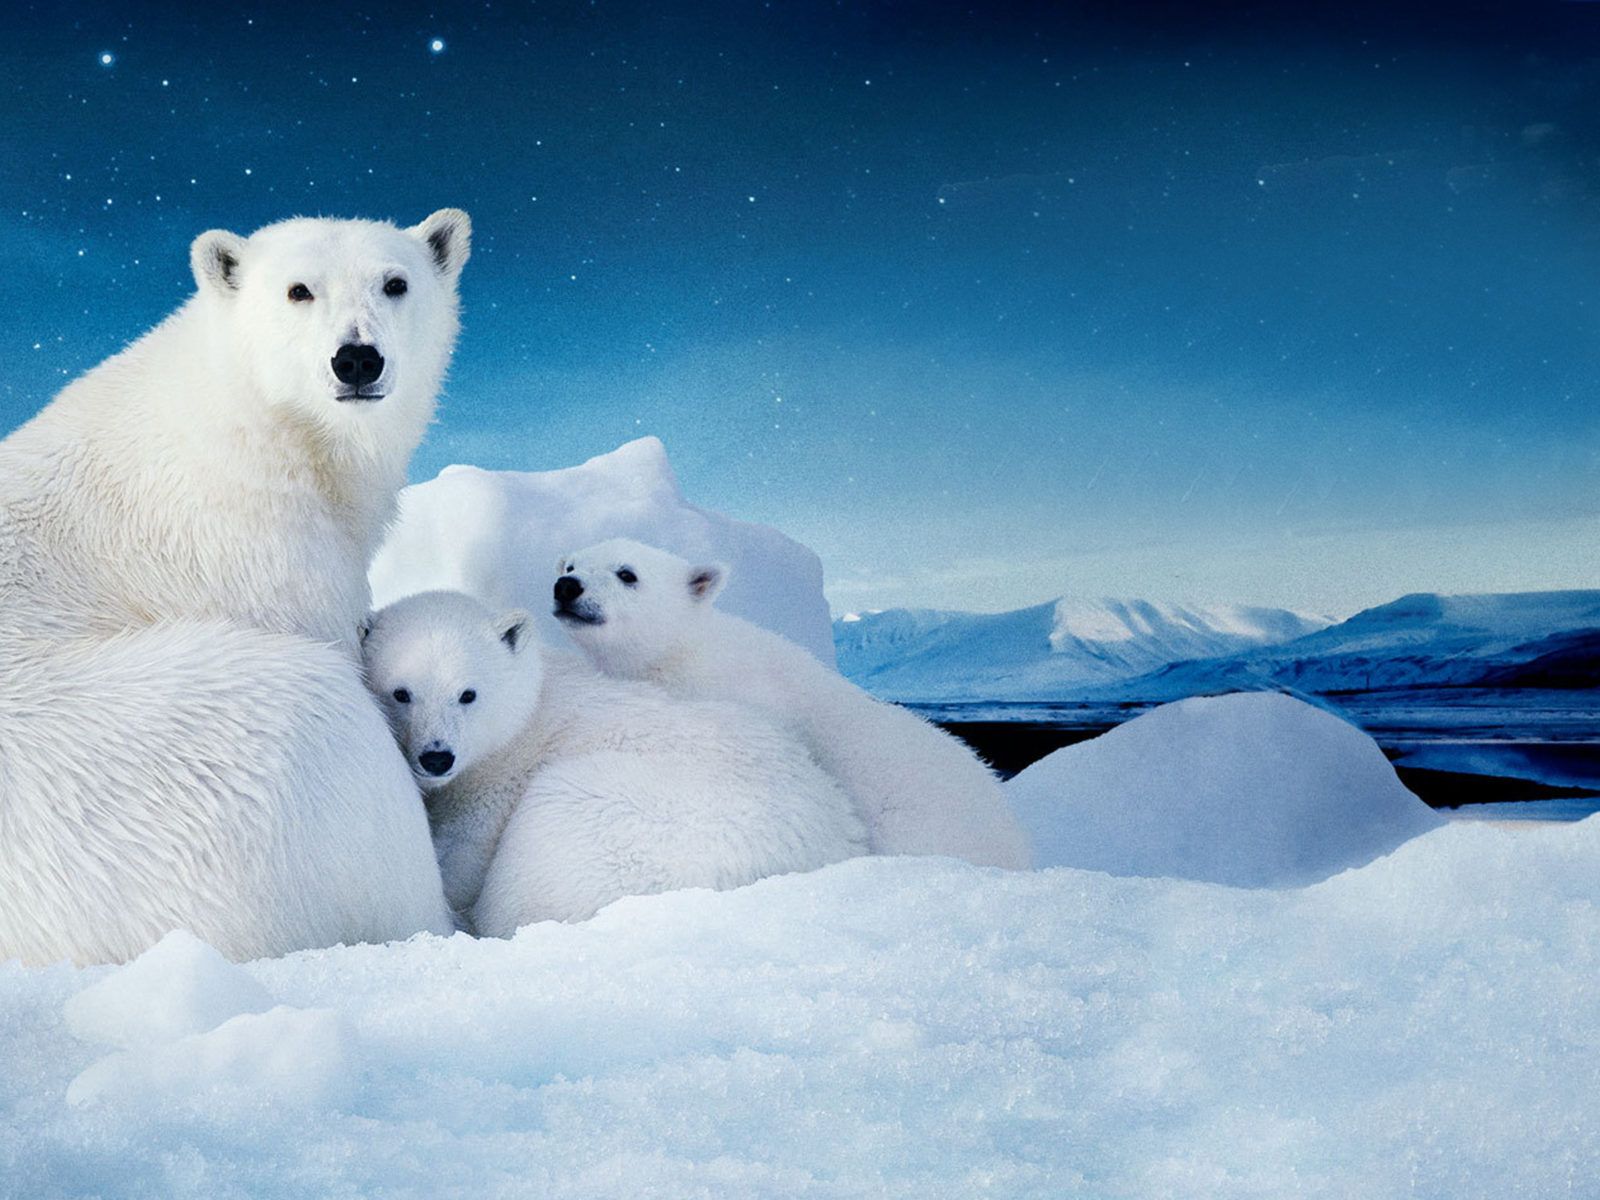 Cute Tiger Cubs Hd Wallpapers White Polar Bear With Two Cubs Small Desktop Wallpaper